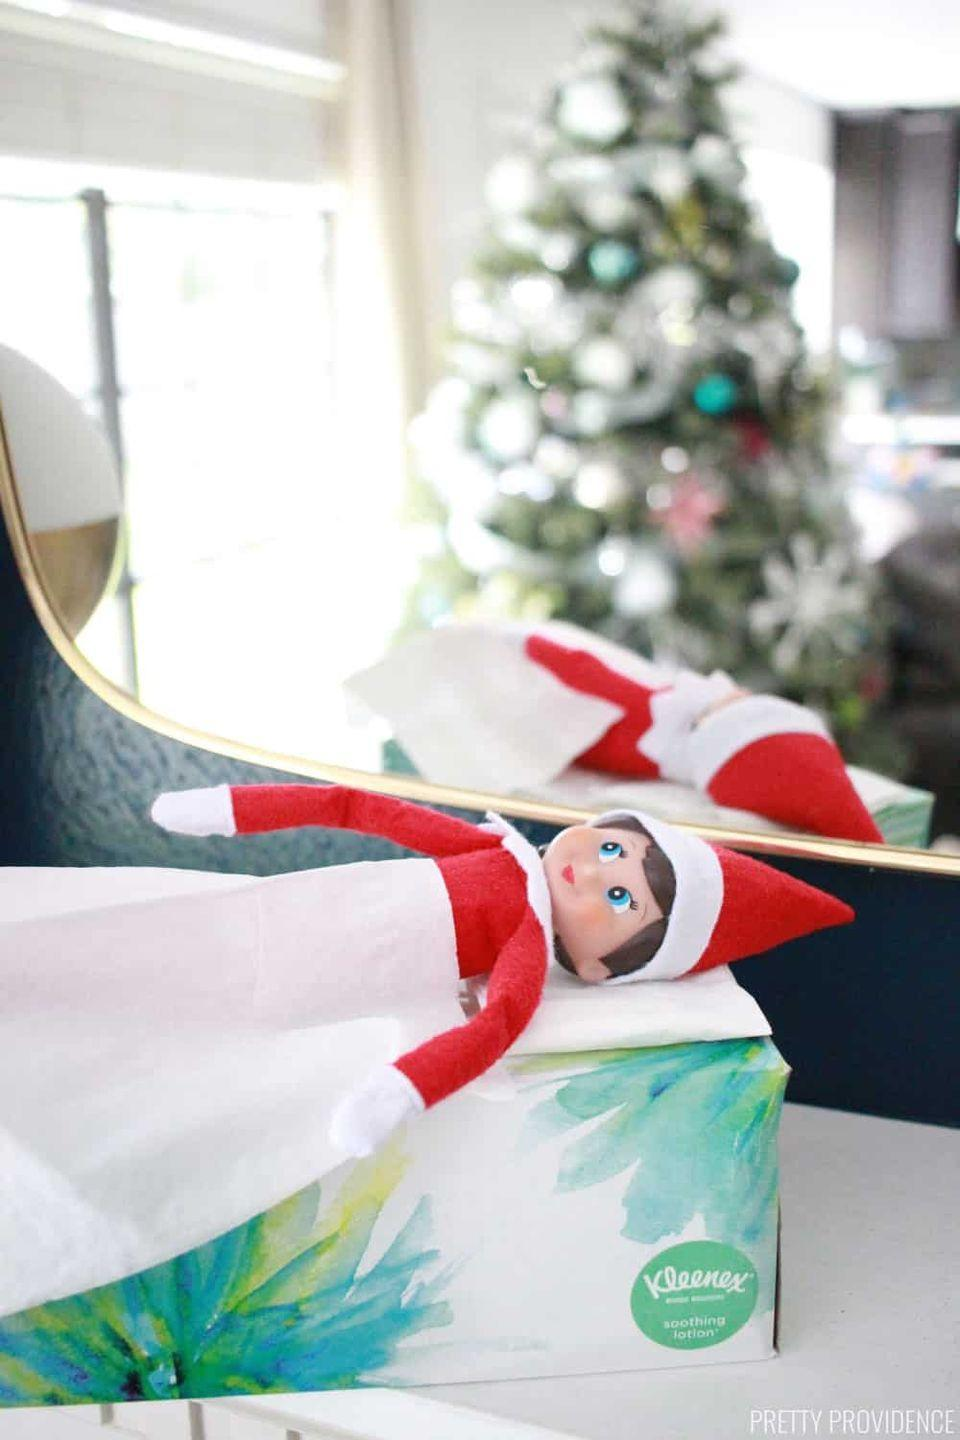 """<p>When your kids wake up on the first day of Elf Return Week, they'll be so glad to see this little guy waking up too! Place the """"bed"""" in their bedroom so that they have a chance to see it first thing in the morning.</p><p><strong>Get the tutorial at <a href=""""https://prettyprovidence.com/elf-on-the-shelf/"""" rel=""""nofollow noopener"""" target=""""_blank"""" data-ylk=""""slk:Pretty Providence"""" class=""""link rapid-noclick-resp"""">Pretty Providence</a>.</strong></p><p><strong><a class=""""link rapid-noclick-resp"""" href=""""https://www.amazon.com/tissue-holders/b?ie=UTF8&node=13749811&tag=syn-yahoo-20&ascsubtag=%5Bartid%7C10050.g.29656008%5Bsrc%7Cyahoo-us"""" rel=""""nofollow noopener"""" target=""""_blank"""" data-ylk=""""slk:SHOP TISSUE HOLDERS"""">SHOP TISSUE HOLDERS</a><br></strong></p>"""